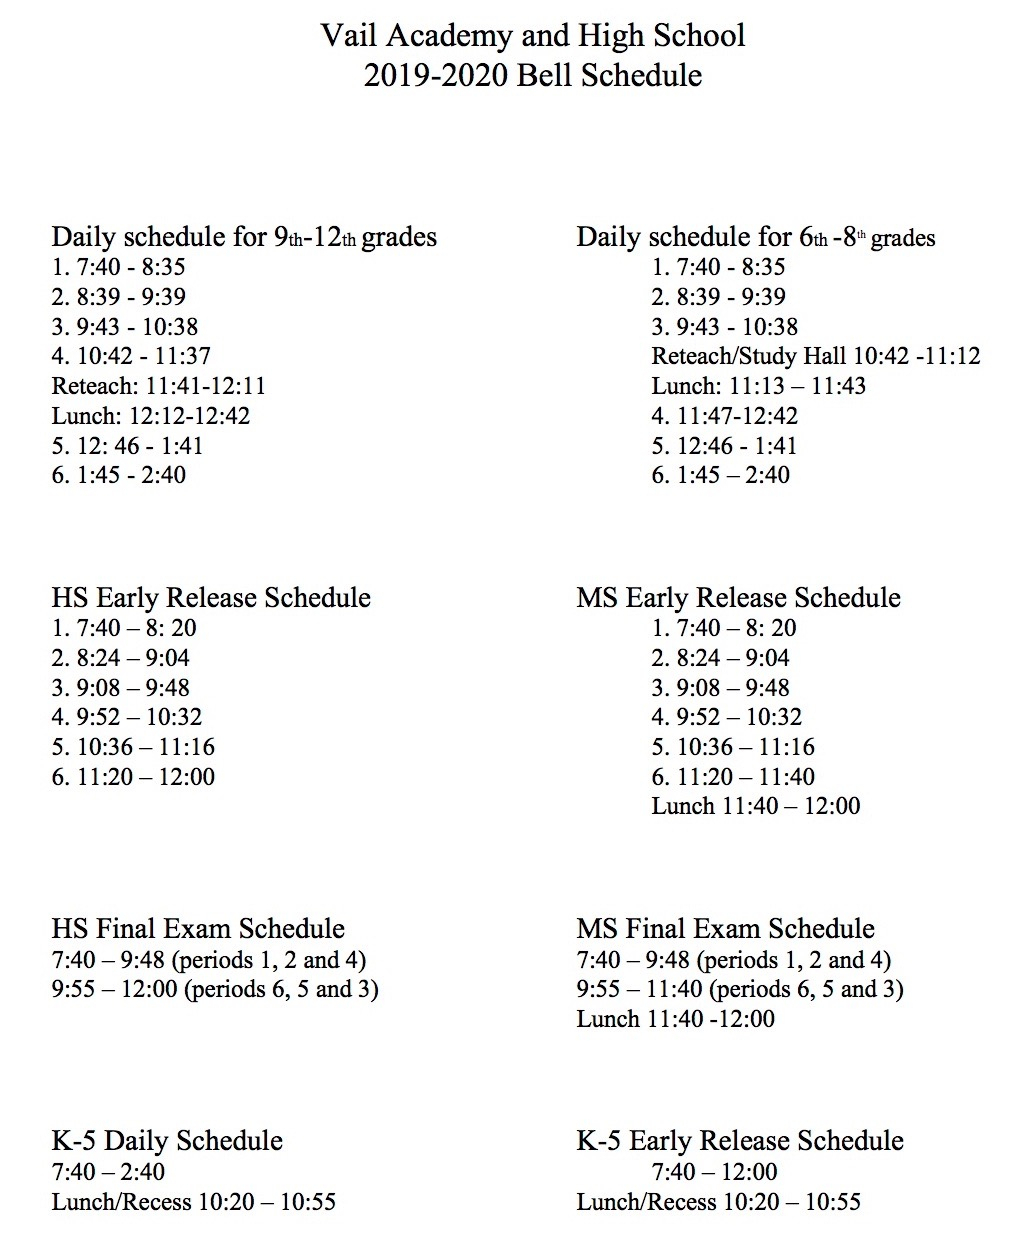 Vail Academy And High School | Bell Schedules inside Vail Academy And High School Calendar